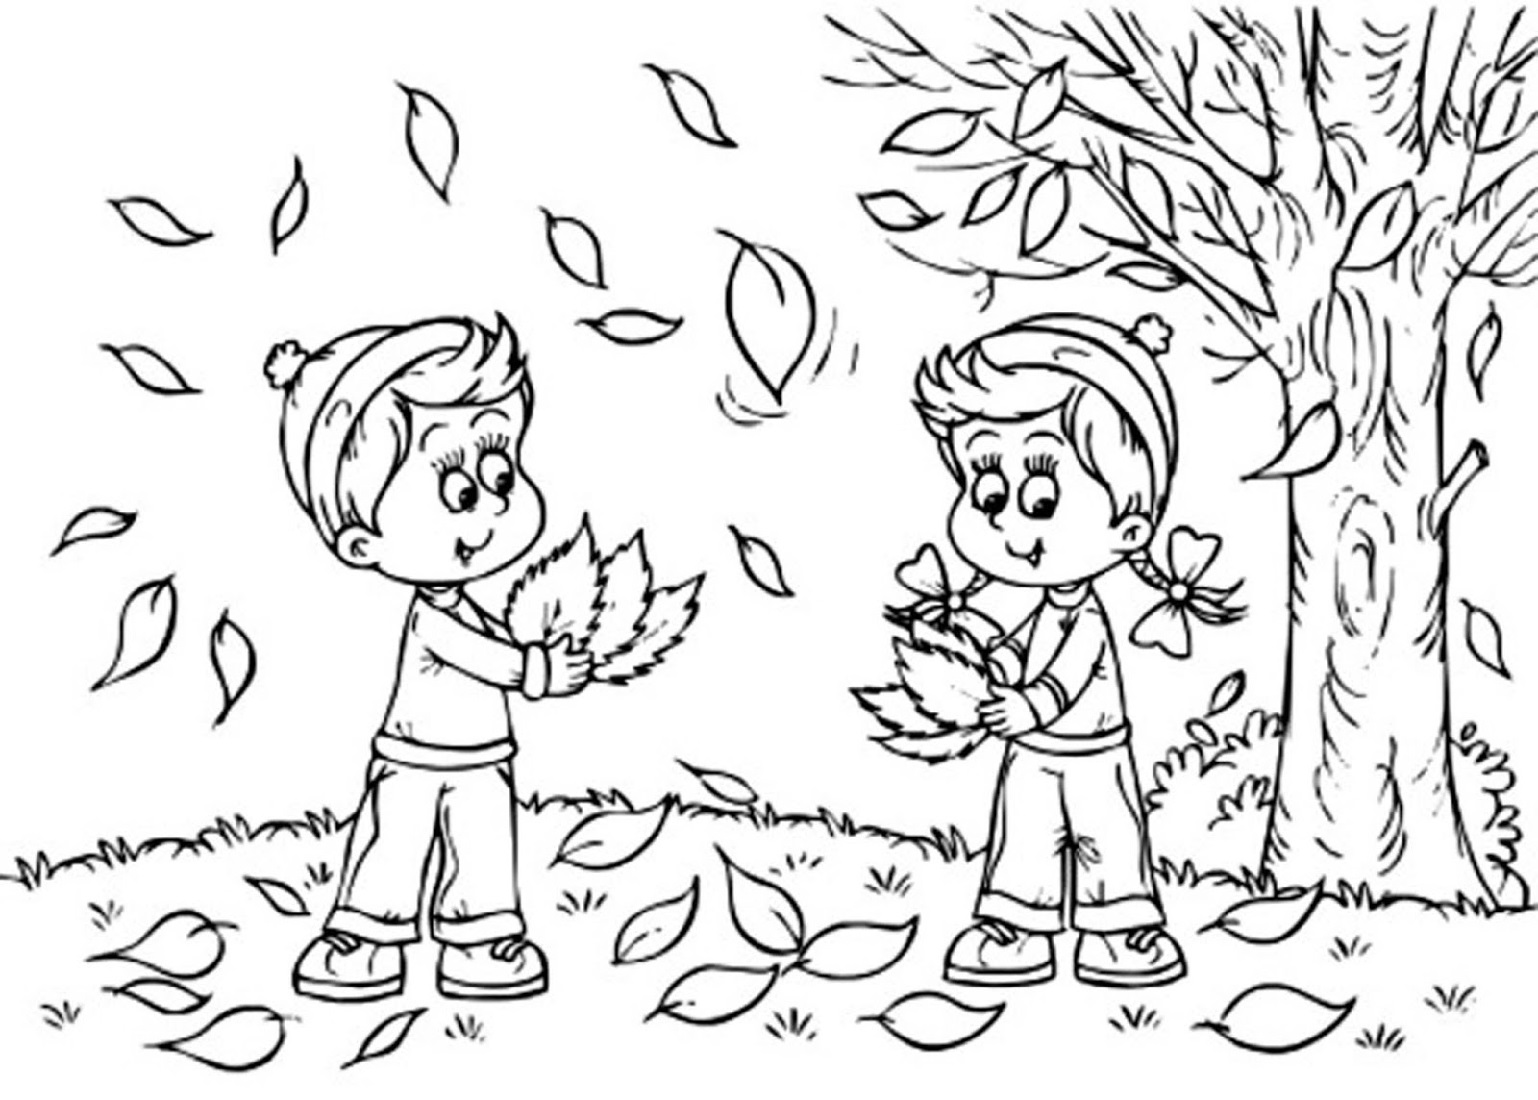 color sheets for fall fall coloring pages for kids and adults 101 activity for sheets fall color